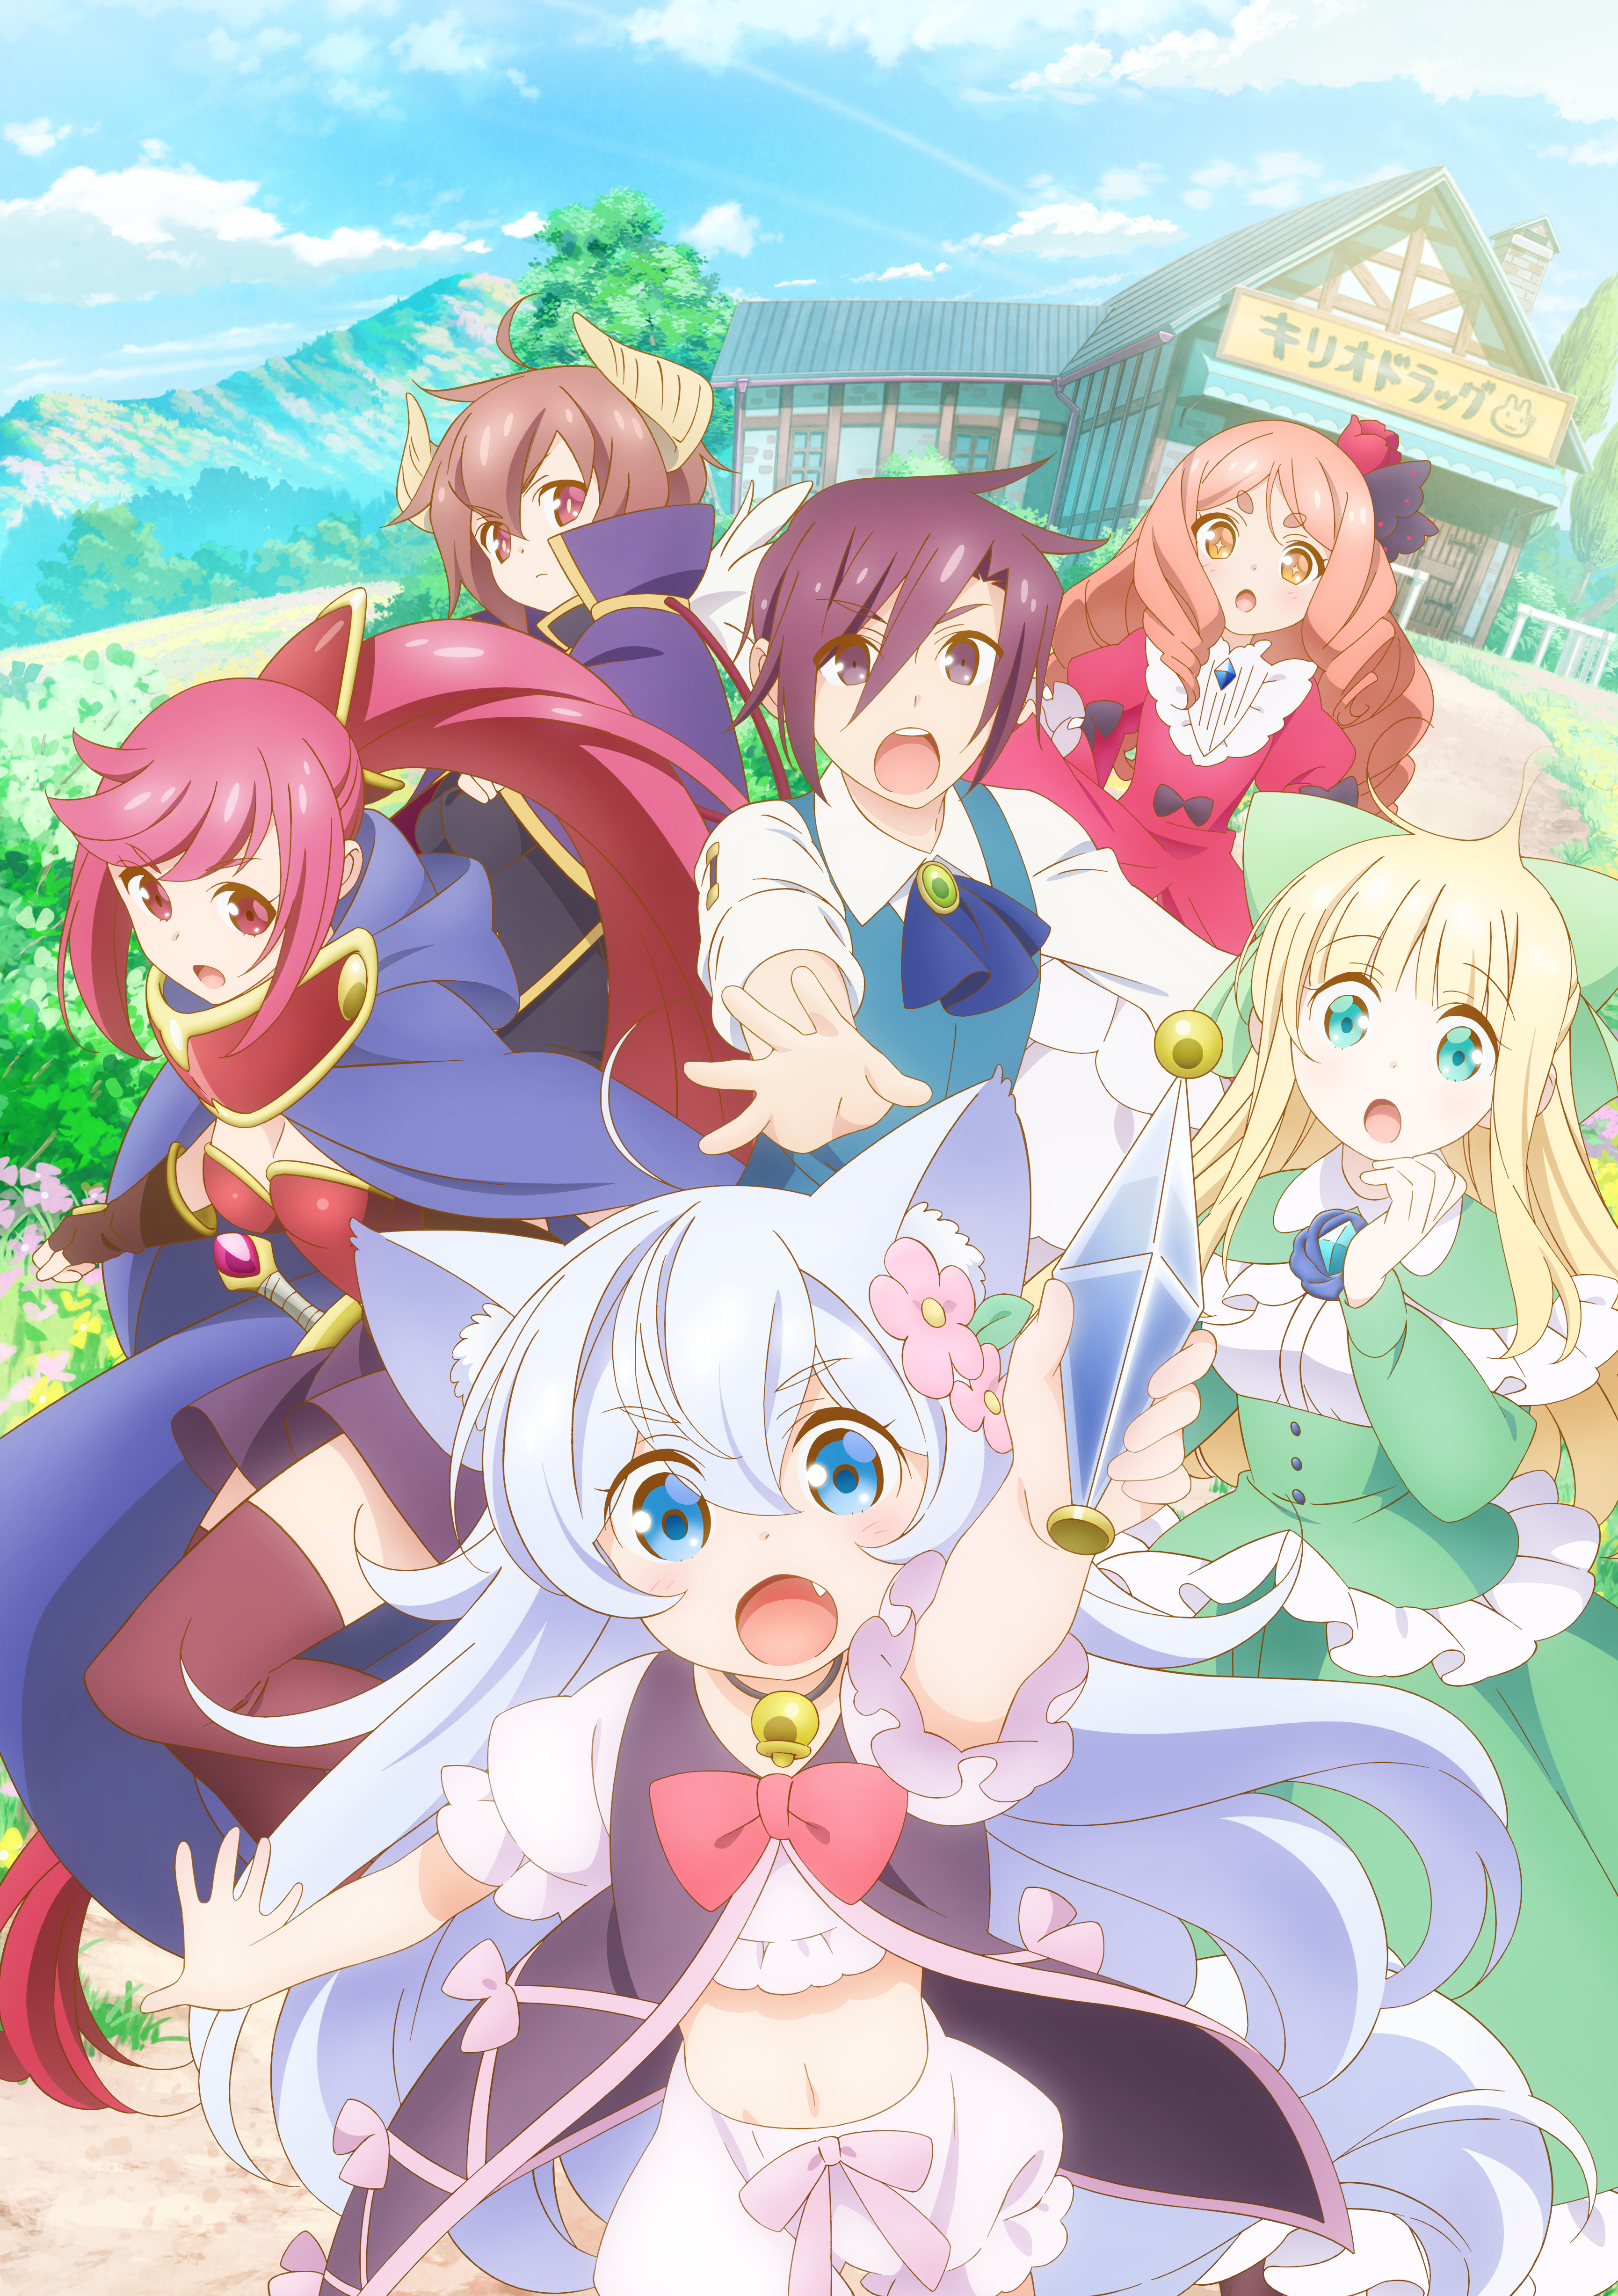 Cheat-Kusushi-no-Slow-Life-Isekai-ni-Tsukurou-Drugstore-KV1 Drugstore in Another World: The Slow Life of a Cheat Pharmacist Starts July 7, Releases PV